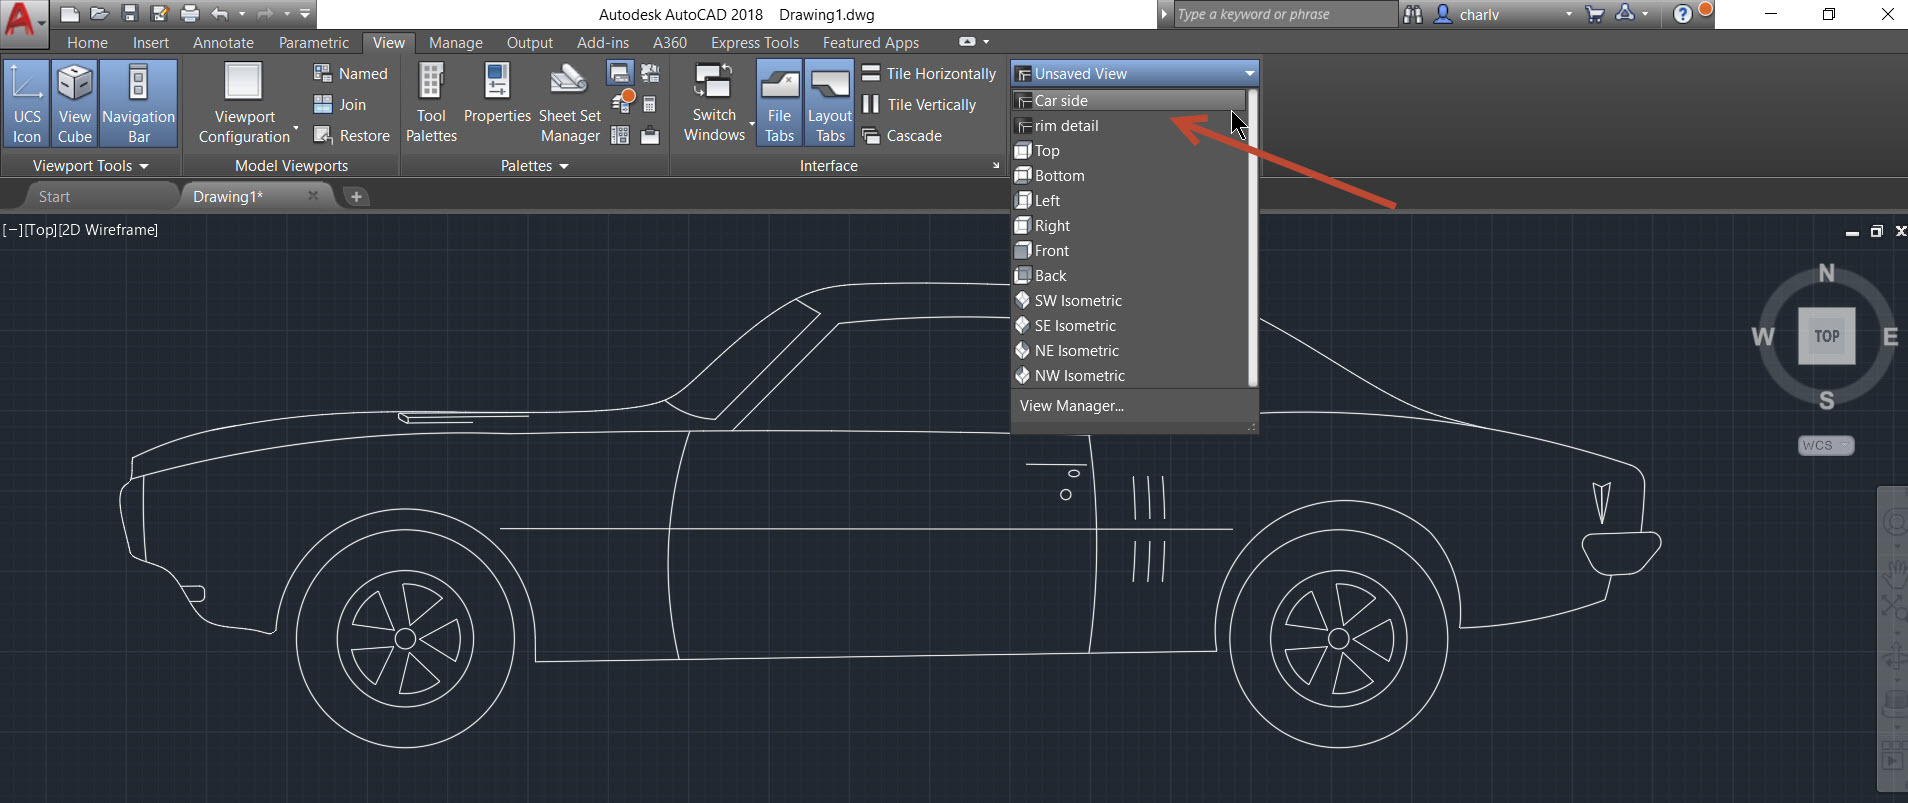 4c AutoCAD 2018.1 new feature – Named View and Viewport creation.